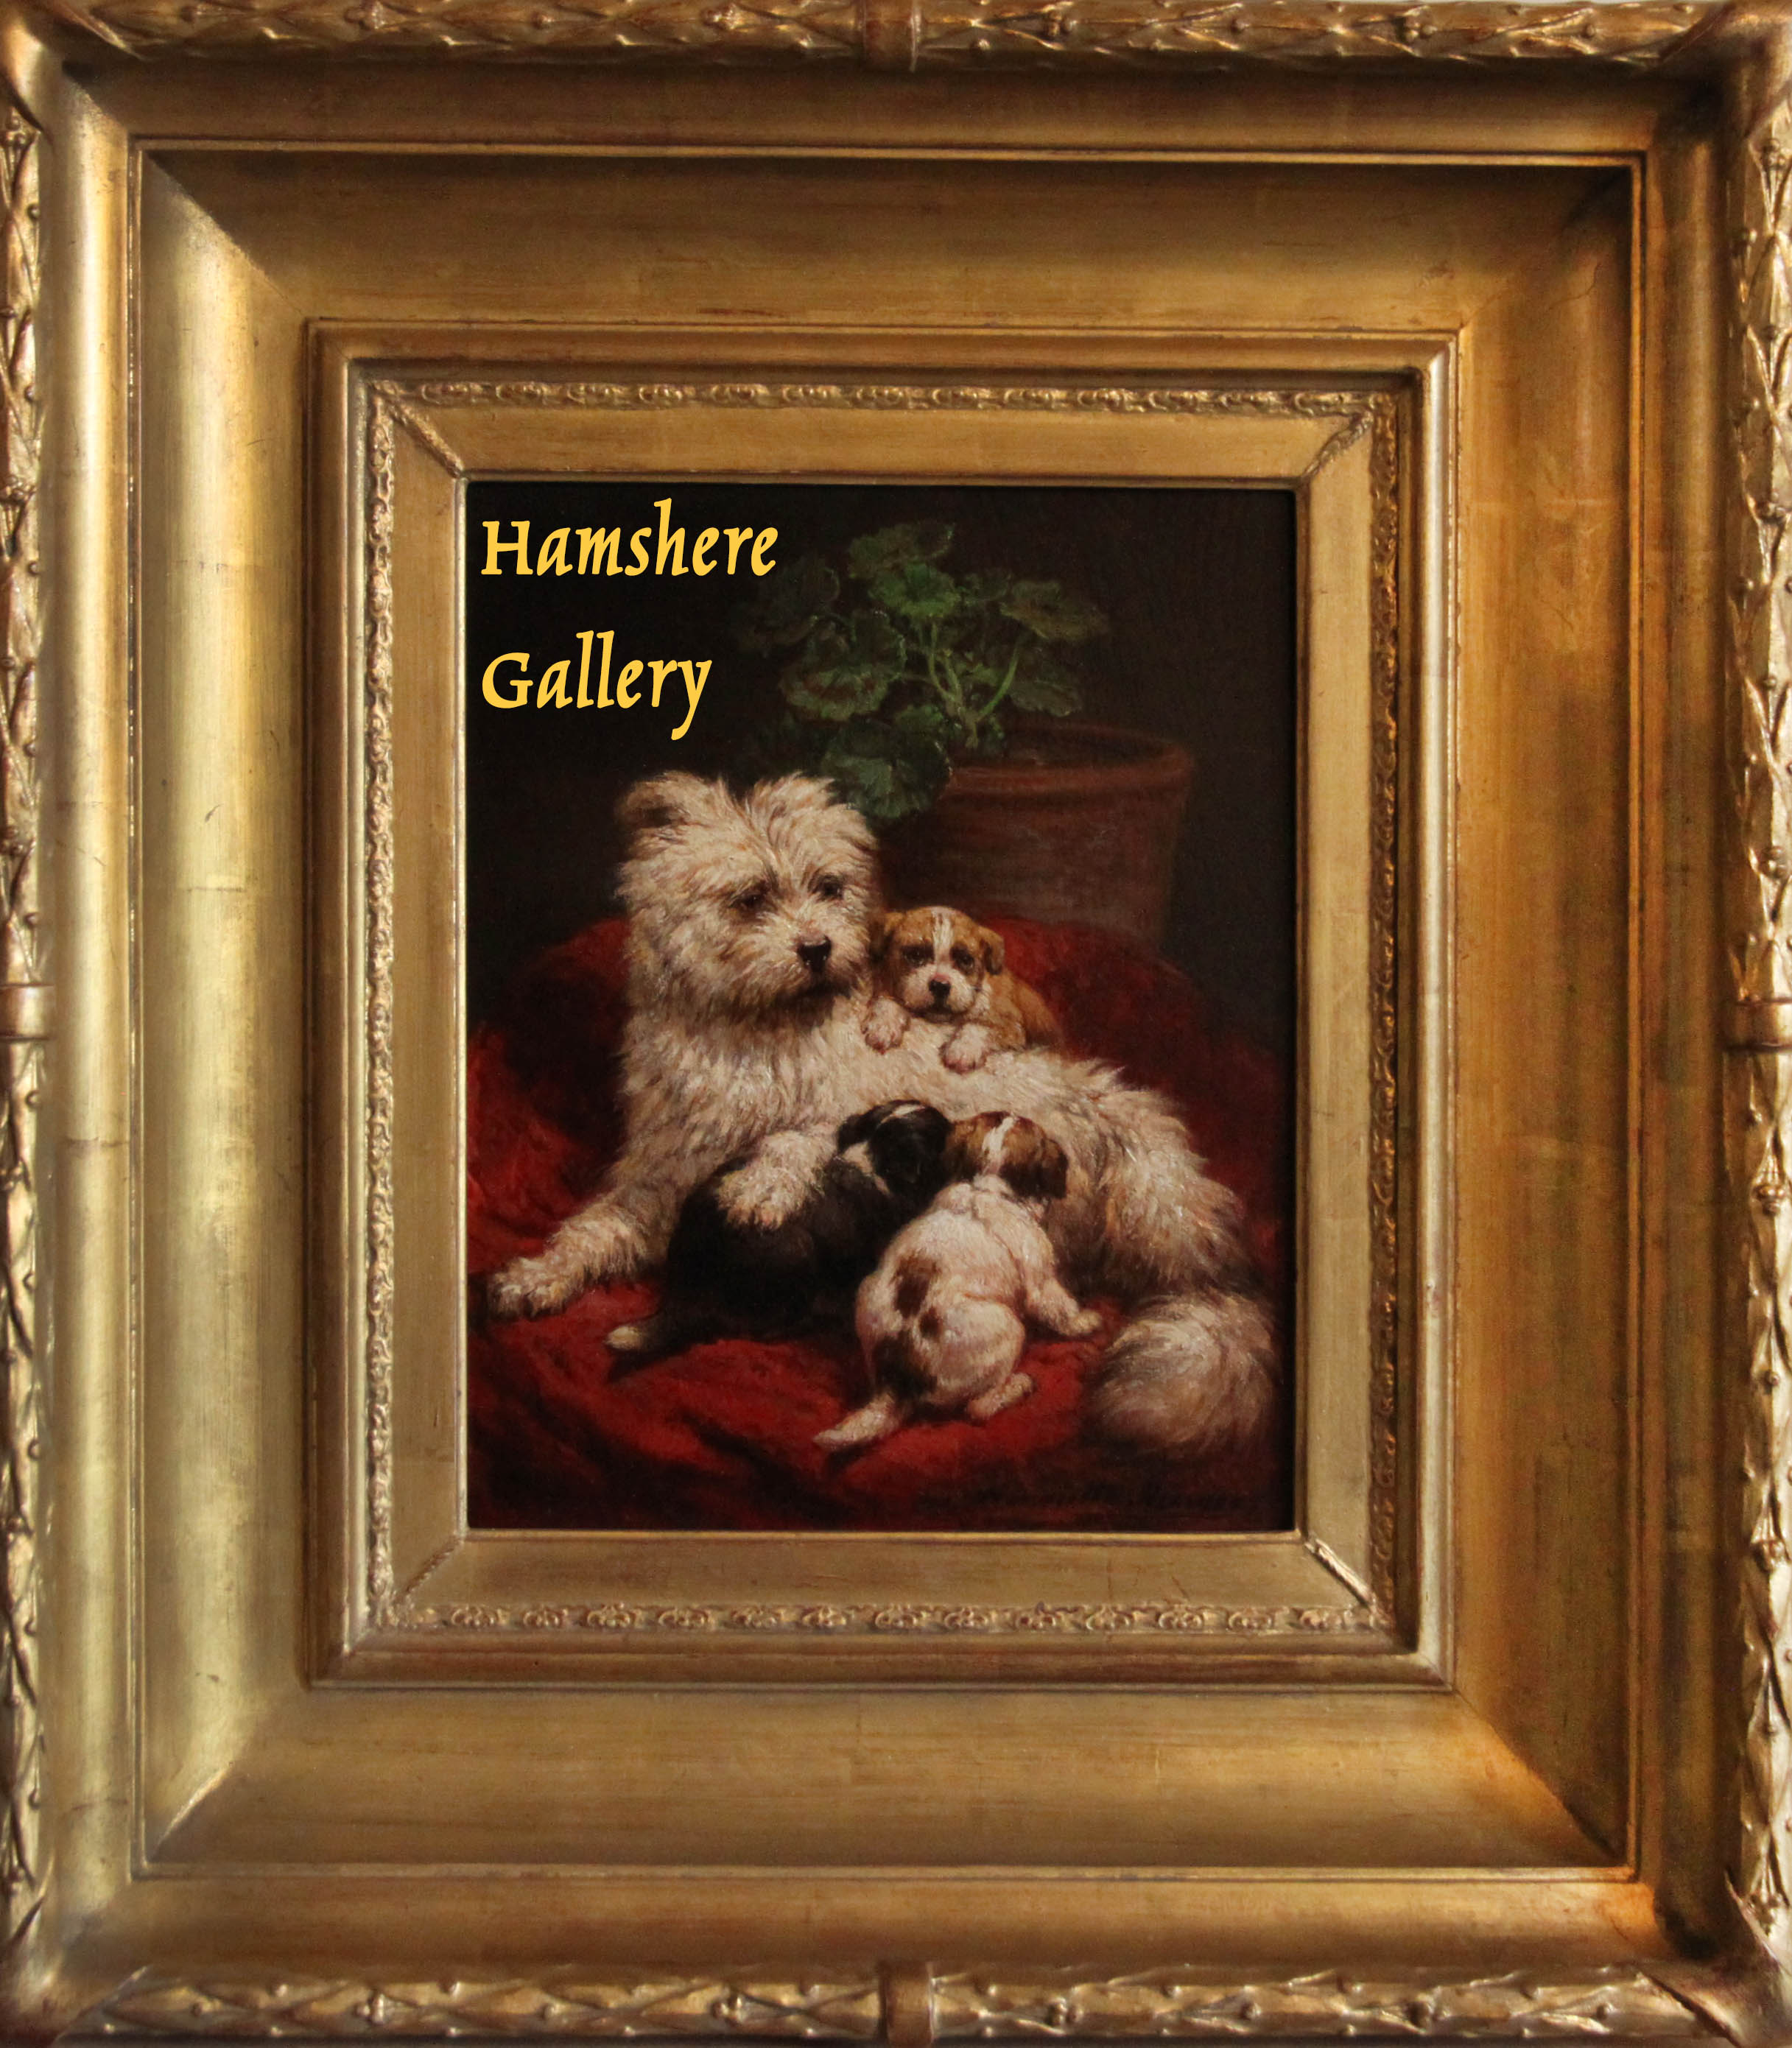 Click for larger image: An oil on panel of a Maltese / Bichon type, mother and puppies by Henriette Ronner-Knip (Dutch, 1821 - 1909) - An oil on panel of a Maltese / Bichon type, mother and puppies by Henriette Ronner-Knip (Dutch, 1821 - 1909)